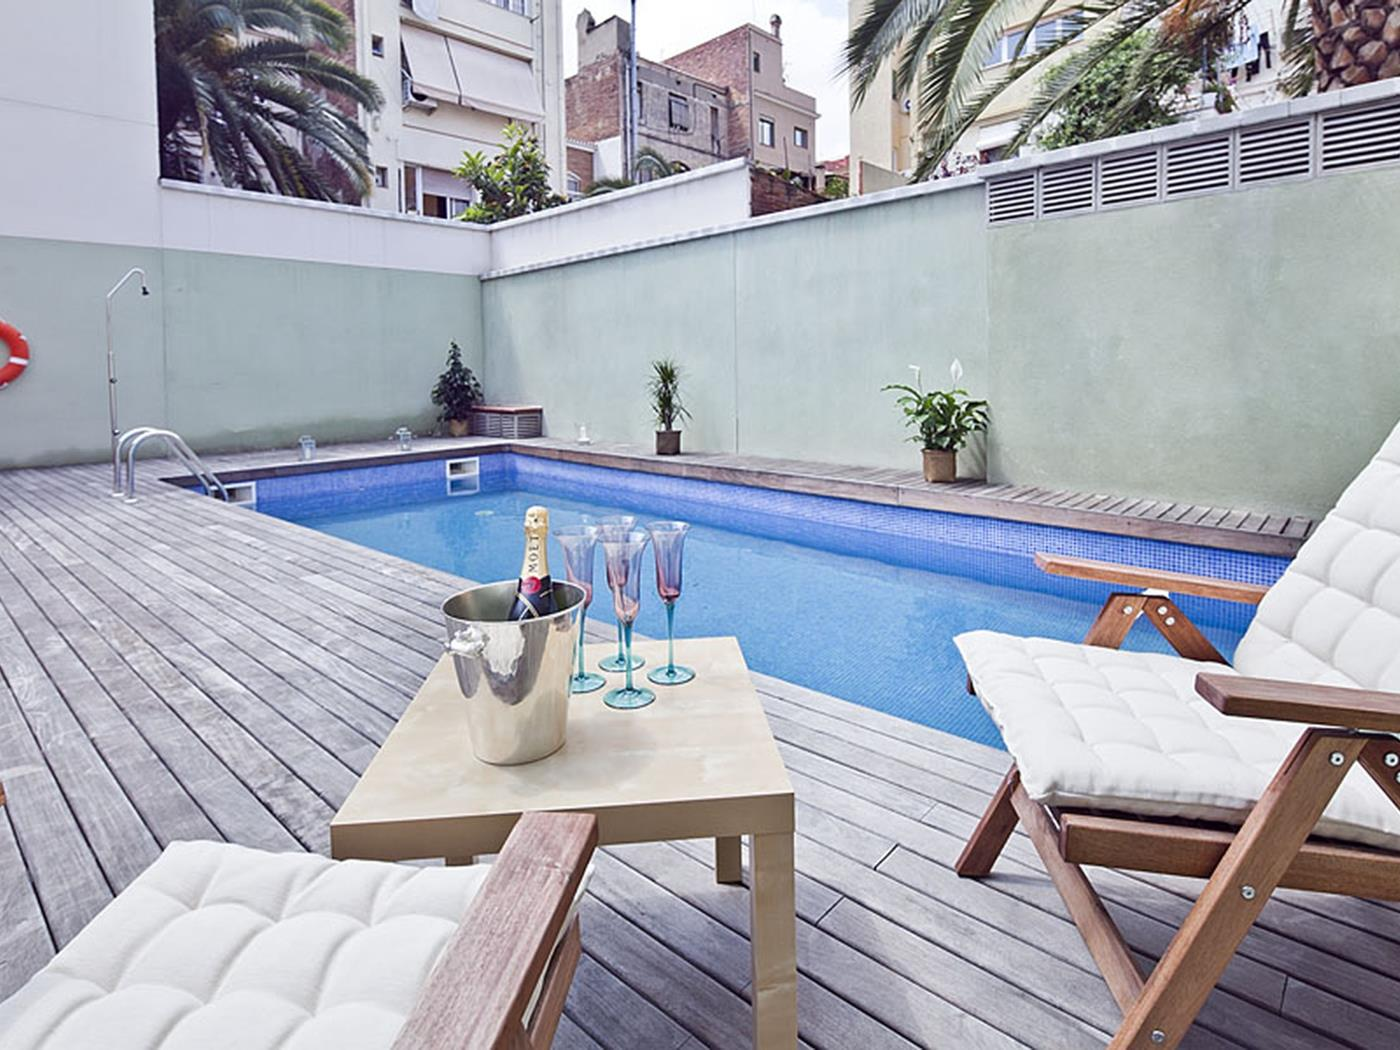 Pool and Terrace Apartment in Gràcia for 6 - My Space Barcelona Apartments